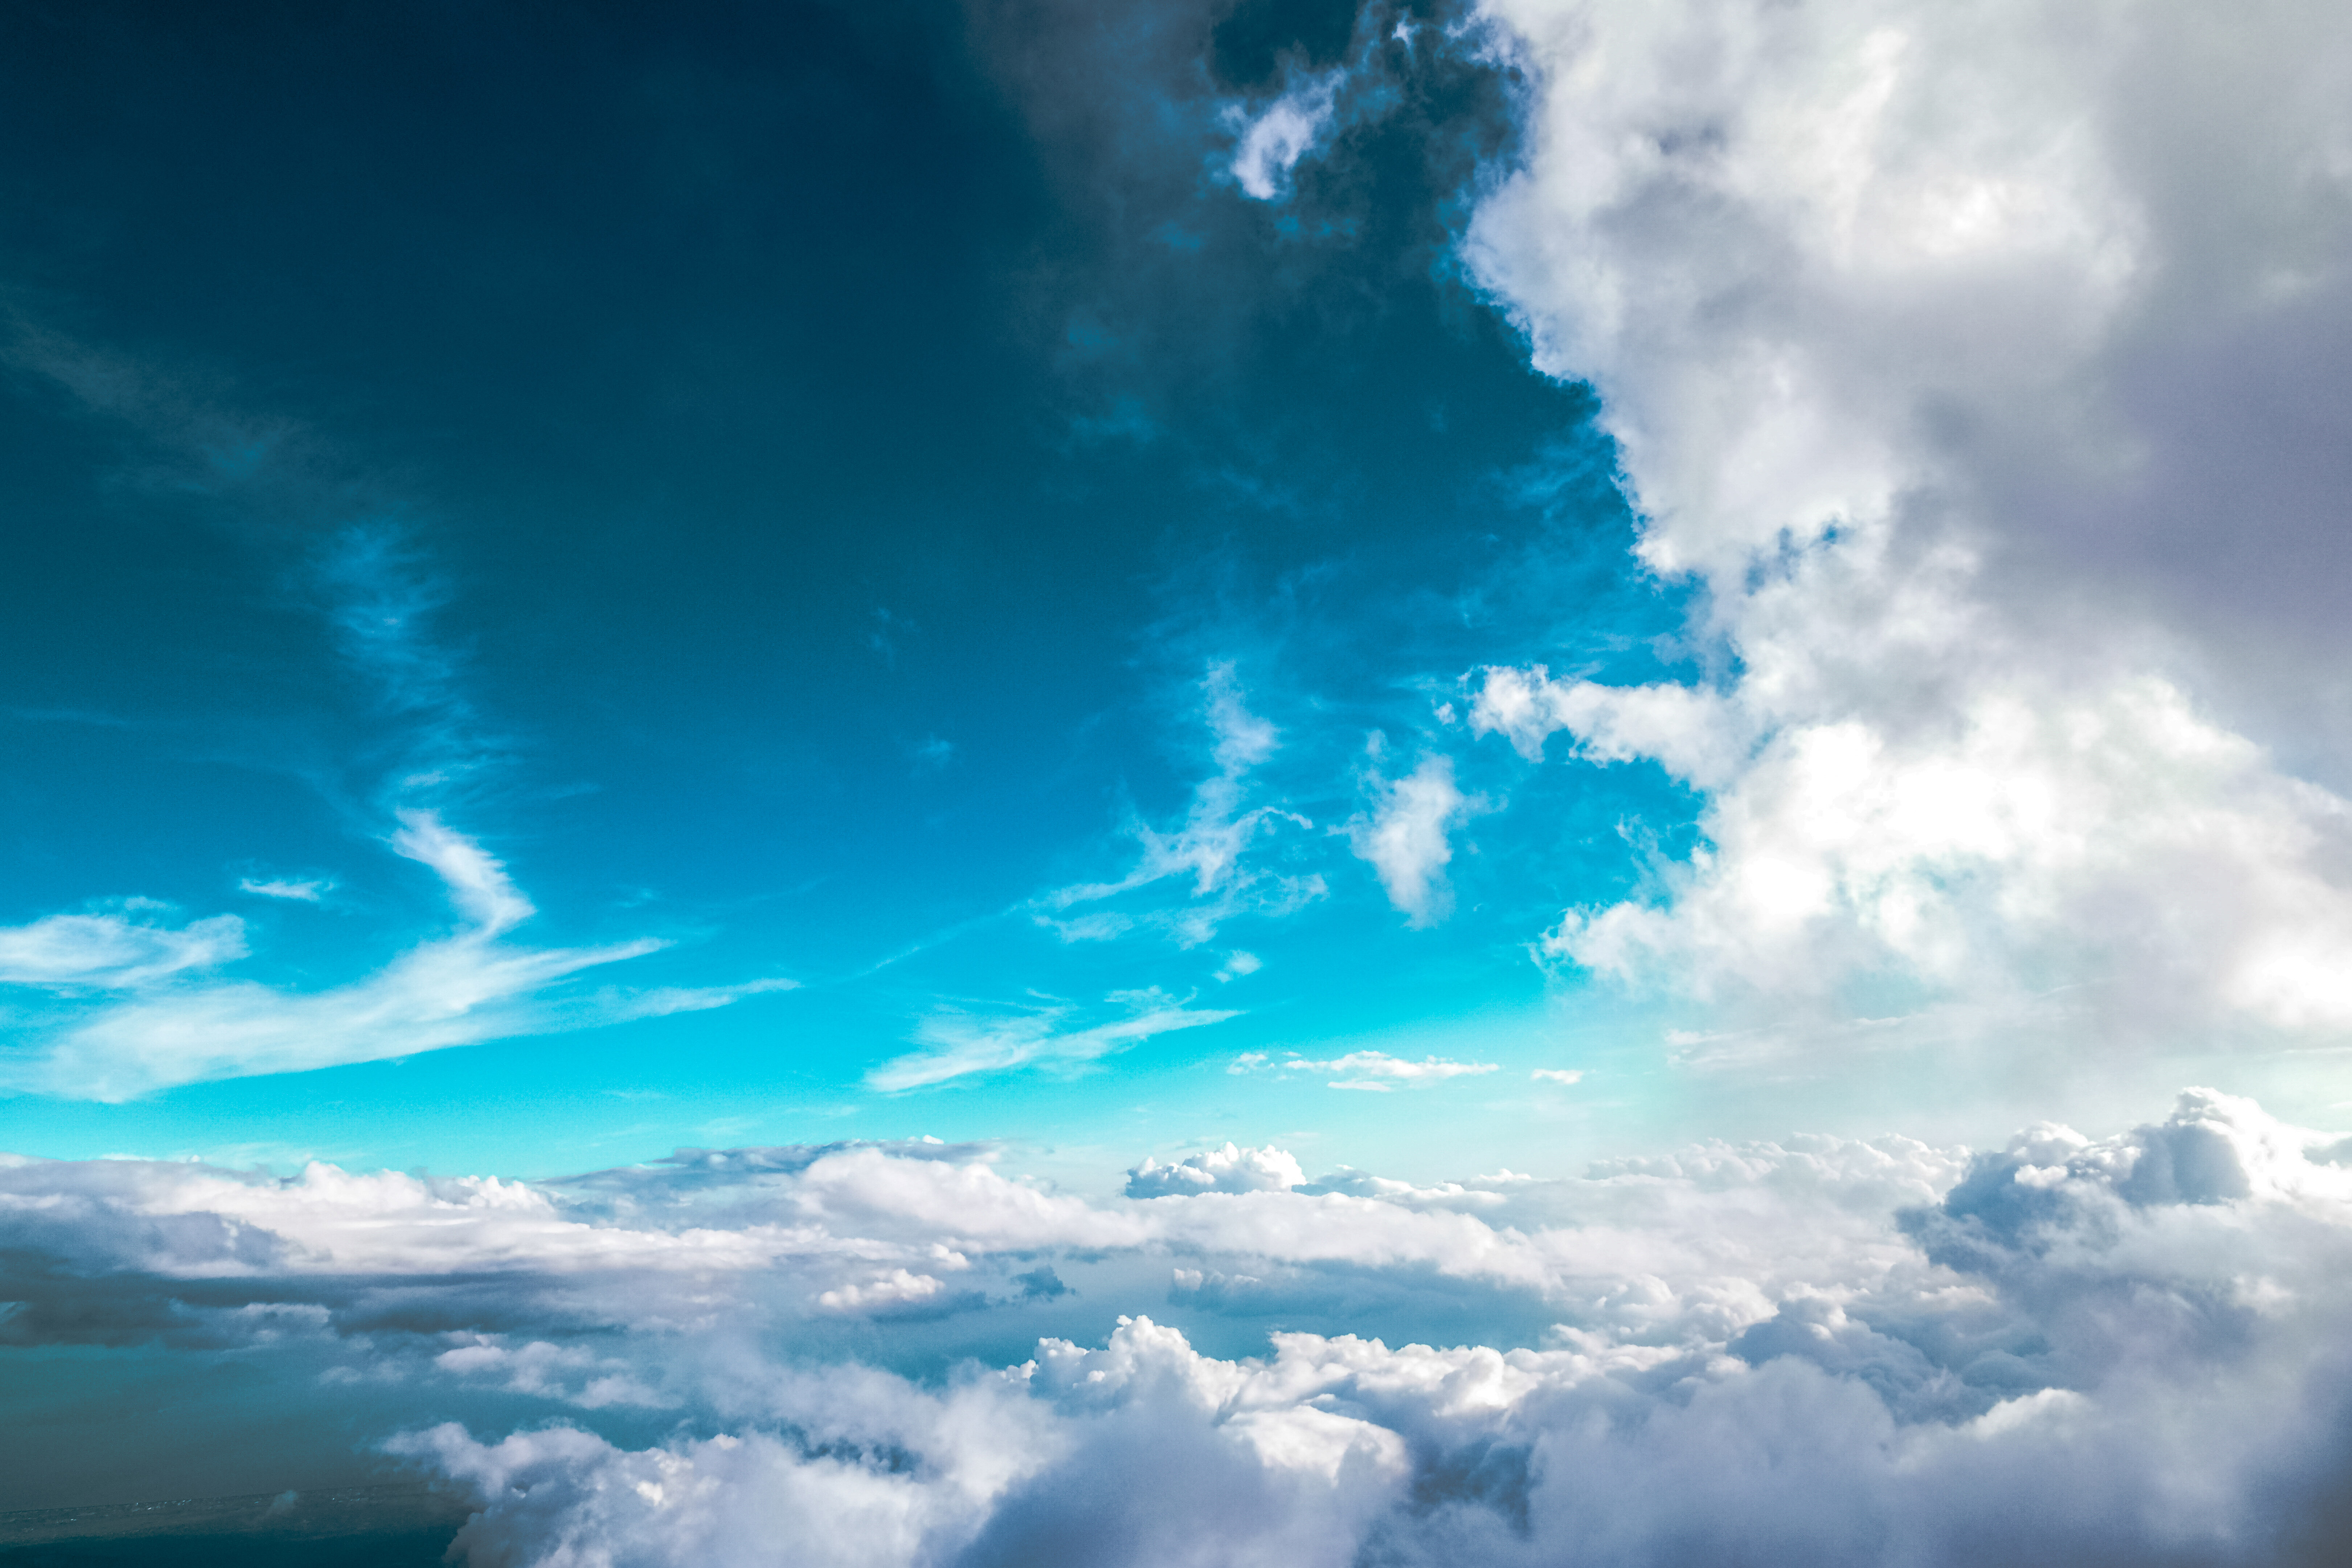 sky within the clouds image free stock photo public domain photo